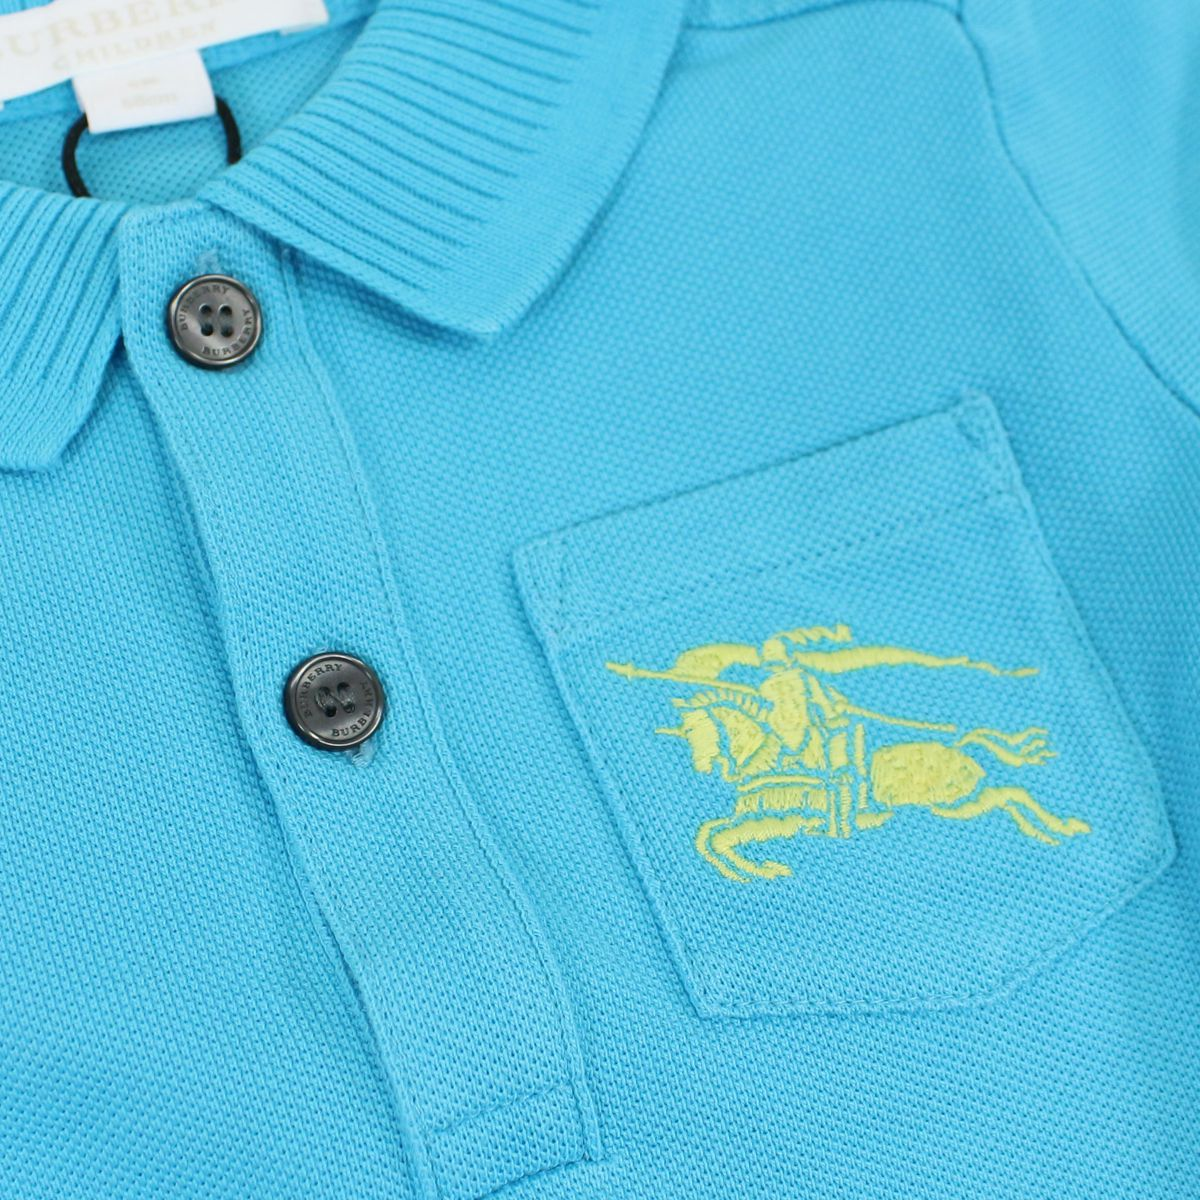 2 button cotton polo shirt Turquoise Burberry